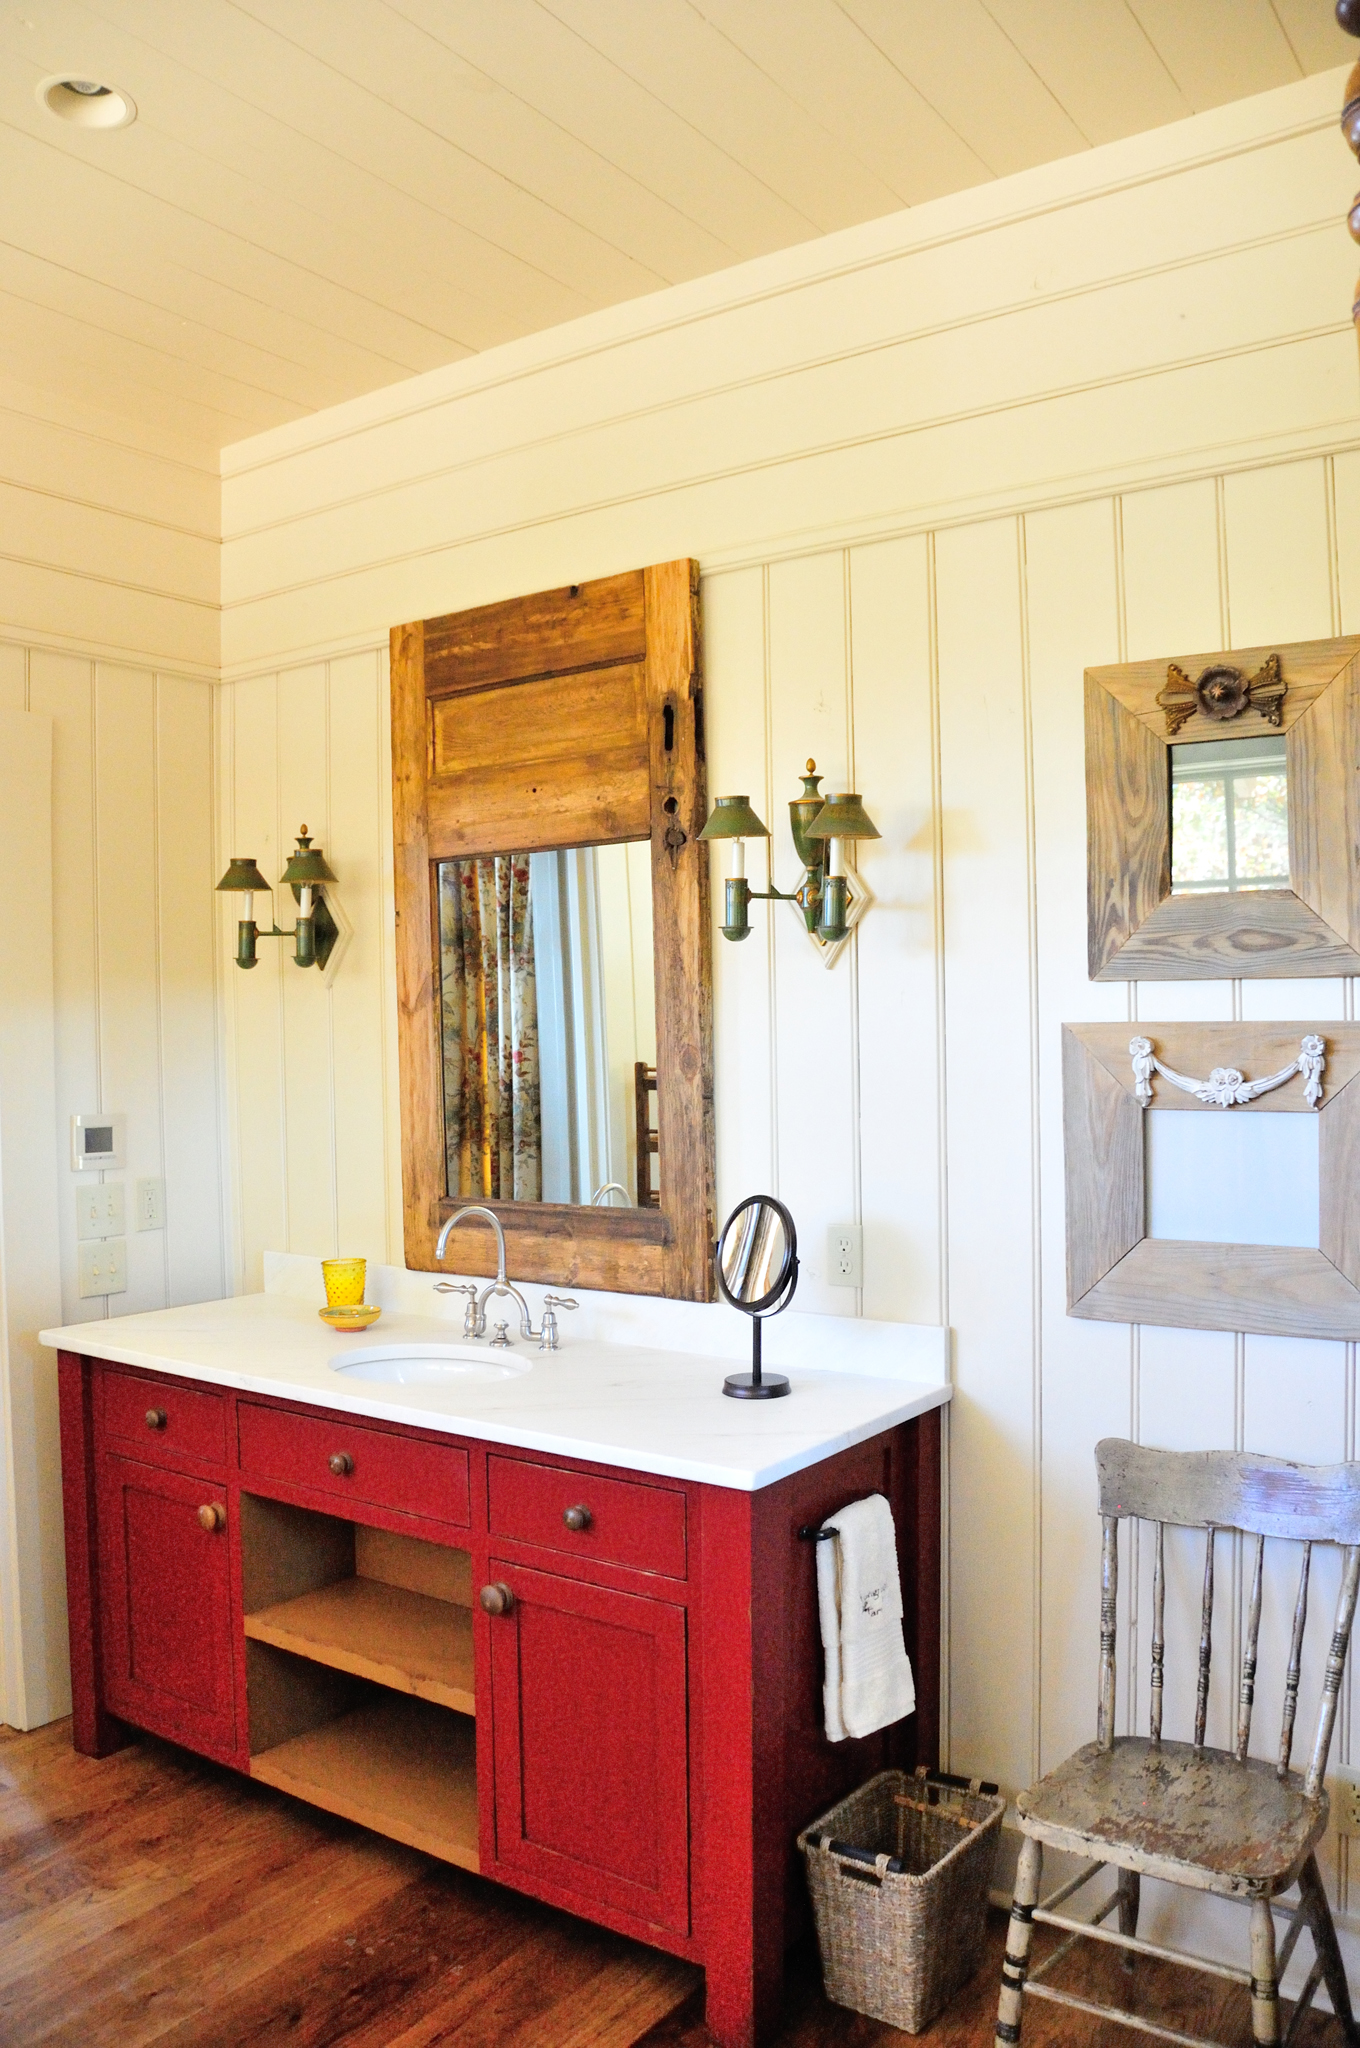 longridge_farm_lakehouse_03_lake_house_her_master_bathroom_bath_room_vanity_wood_panel_1300.jpg